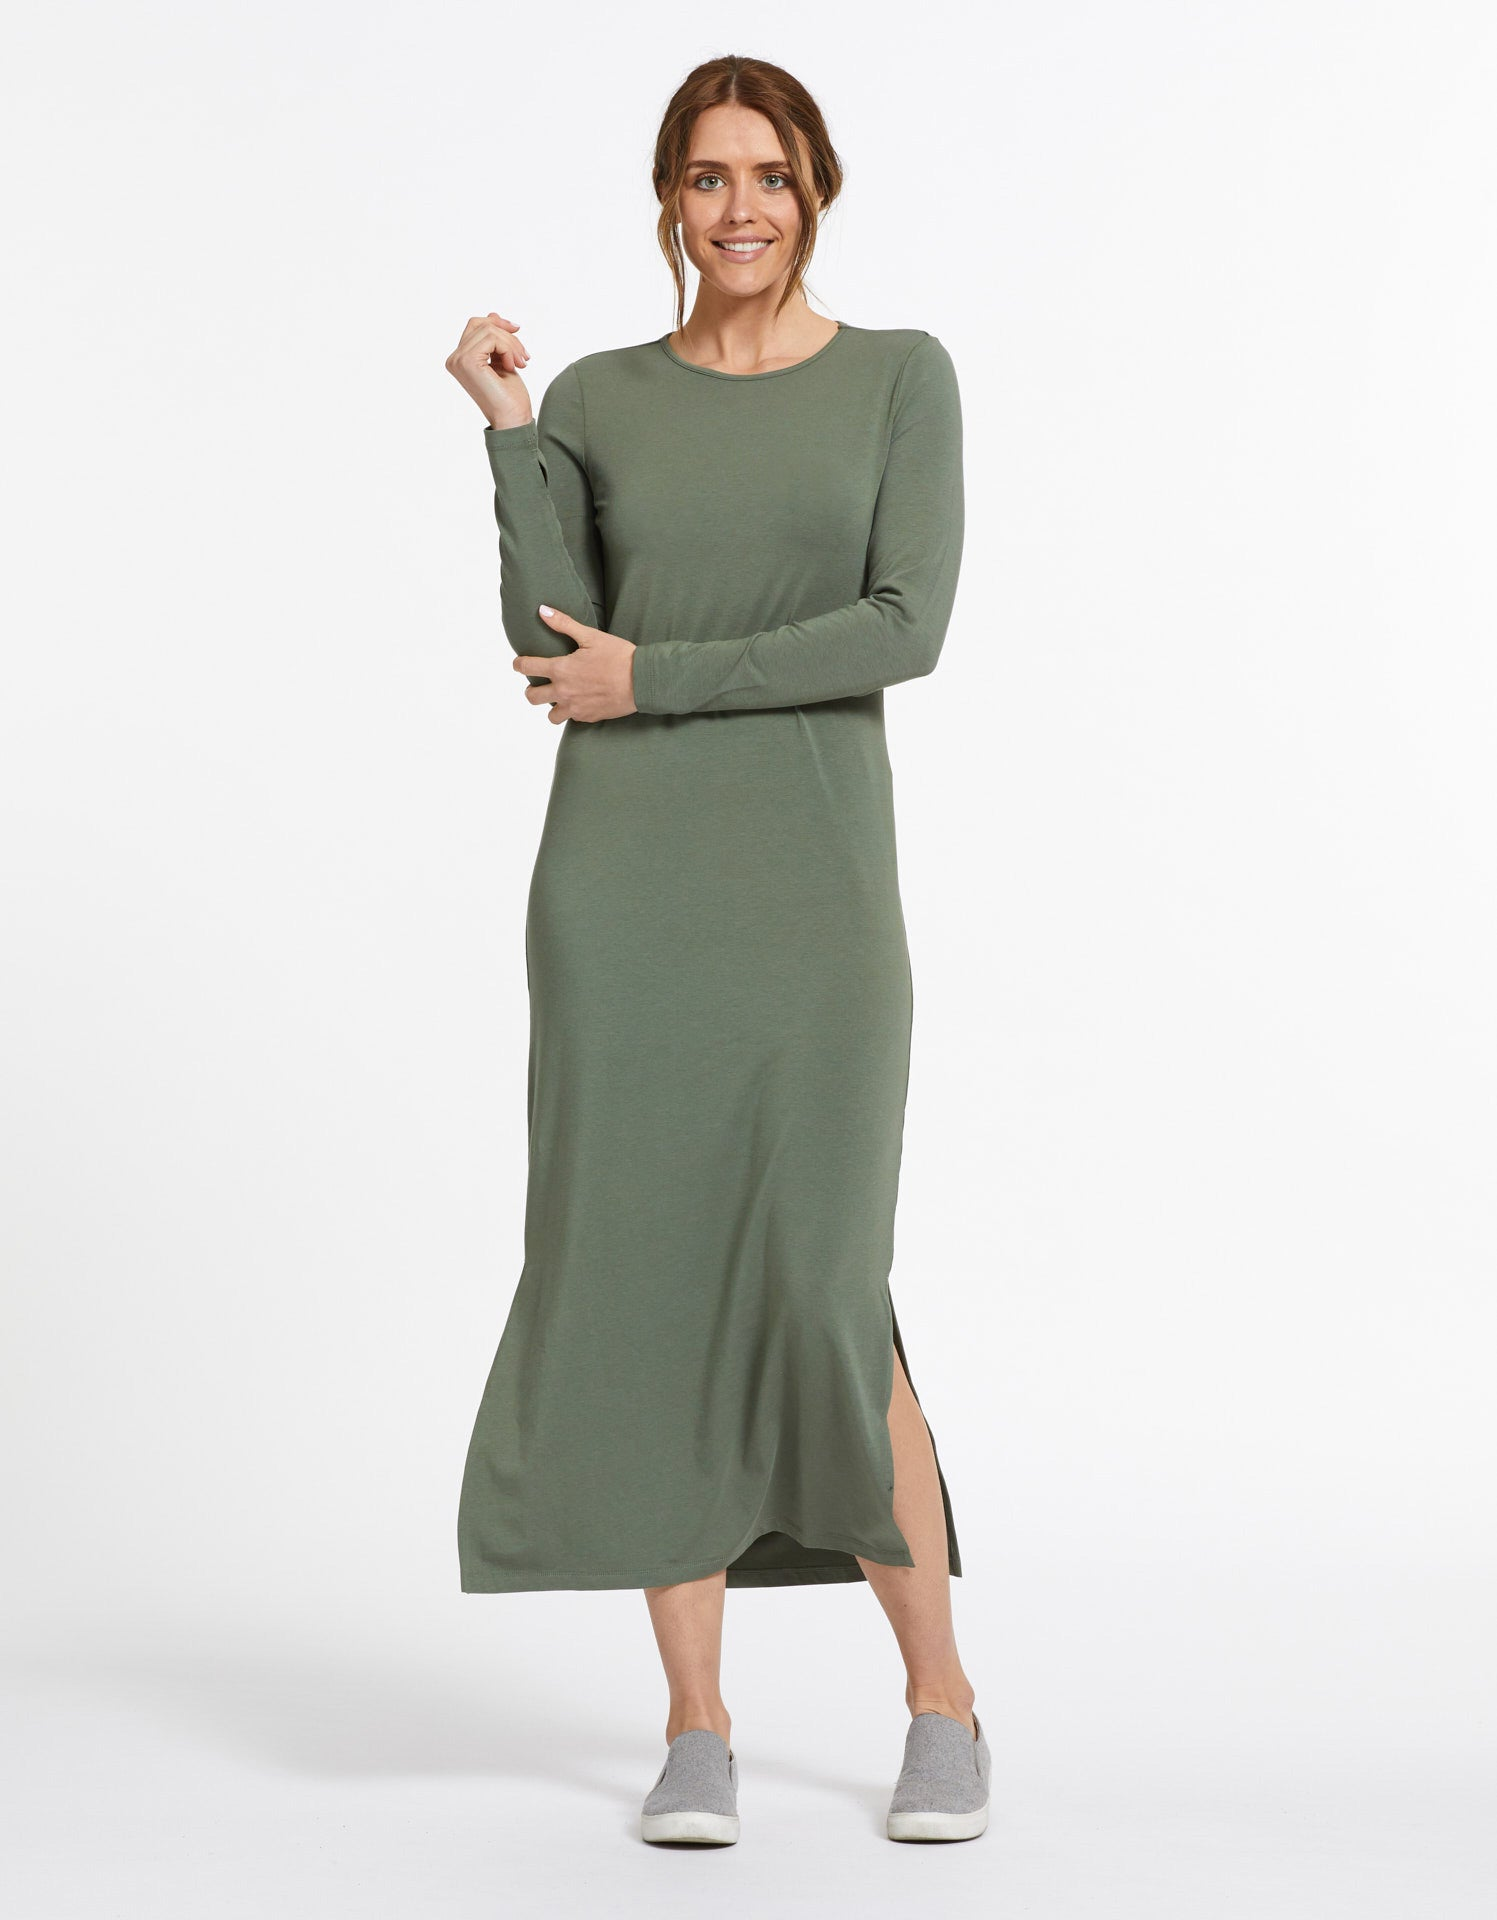 Solbari Sun Protection UPF50+ Long Sleeve Maxi Dress Sensitive Collection in Eucalyptus